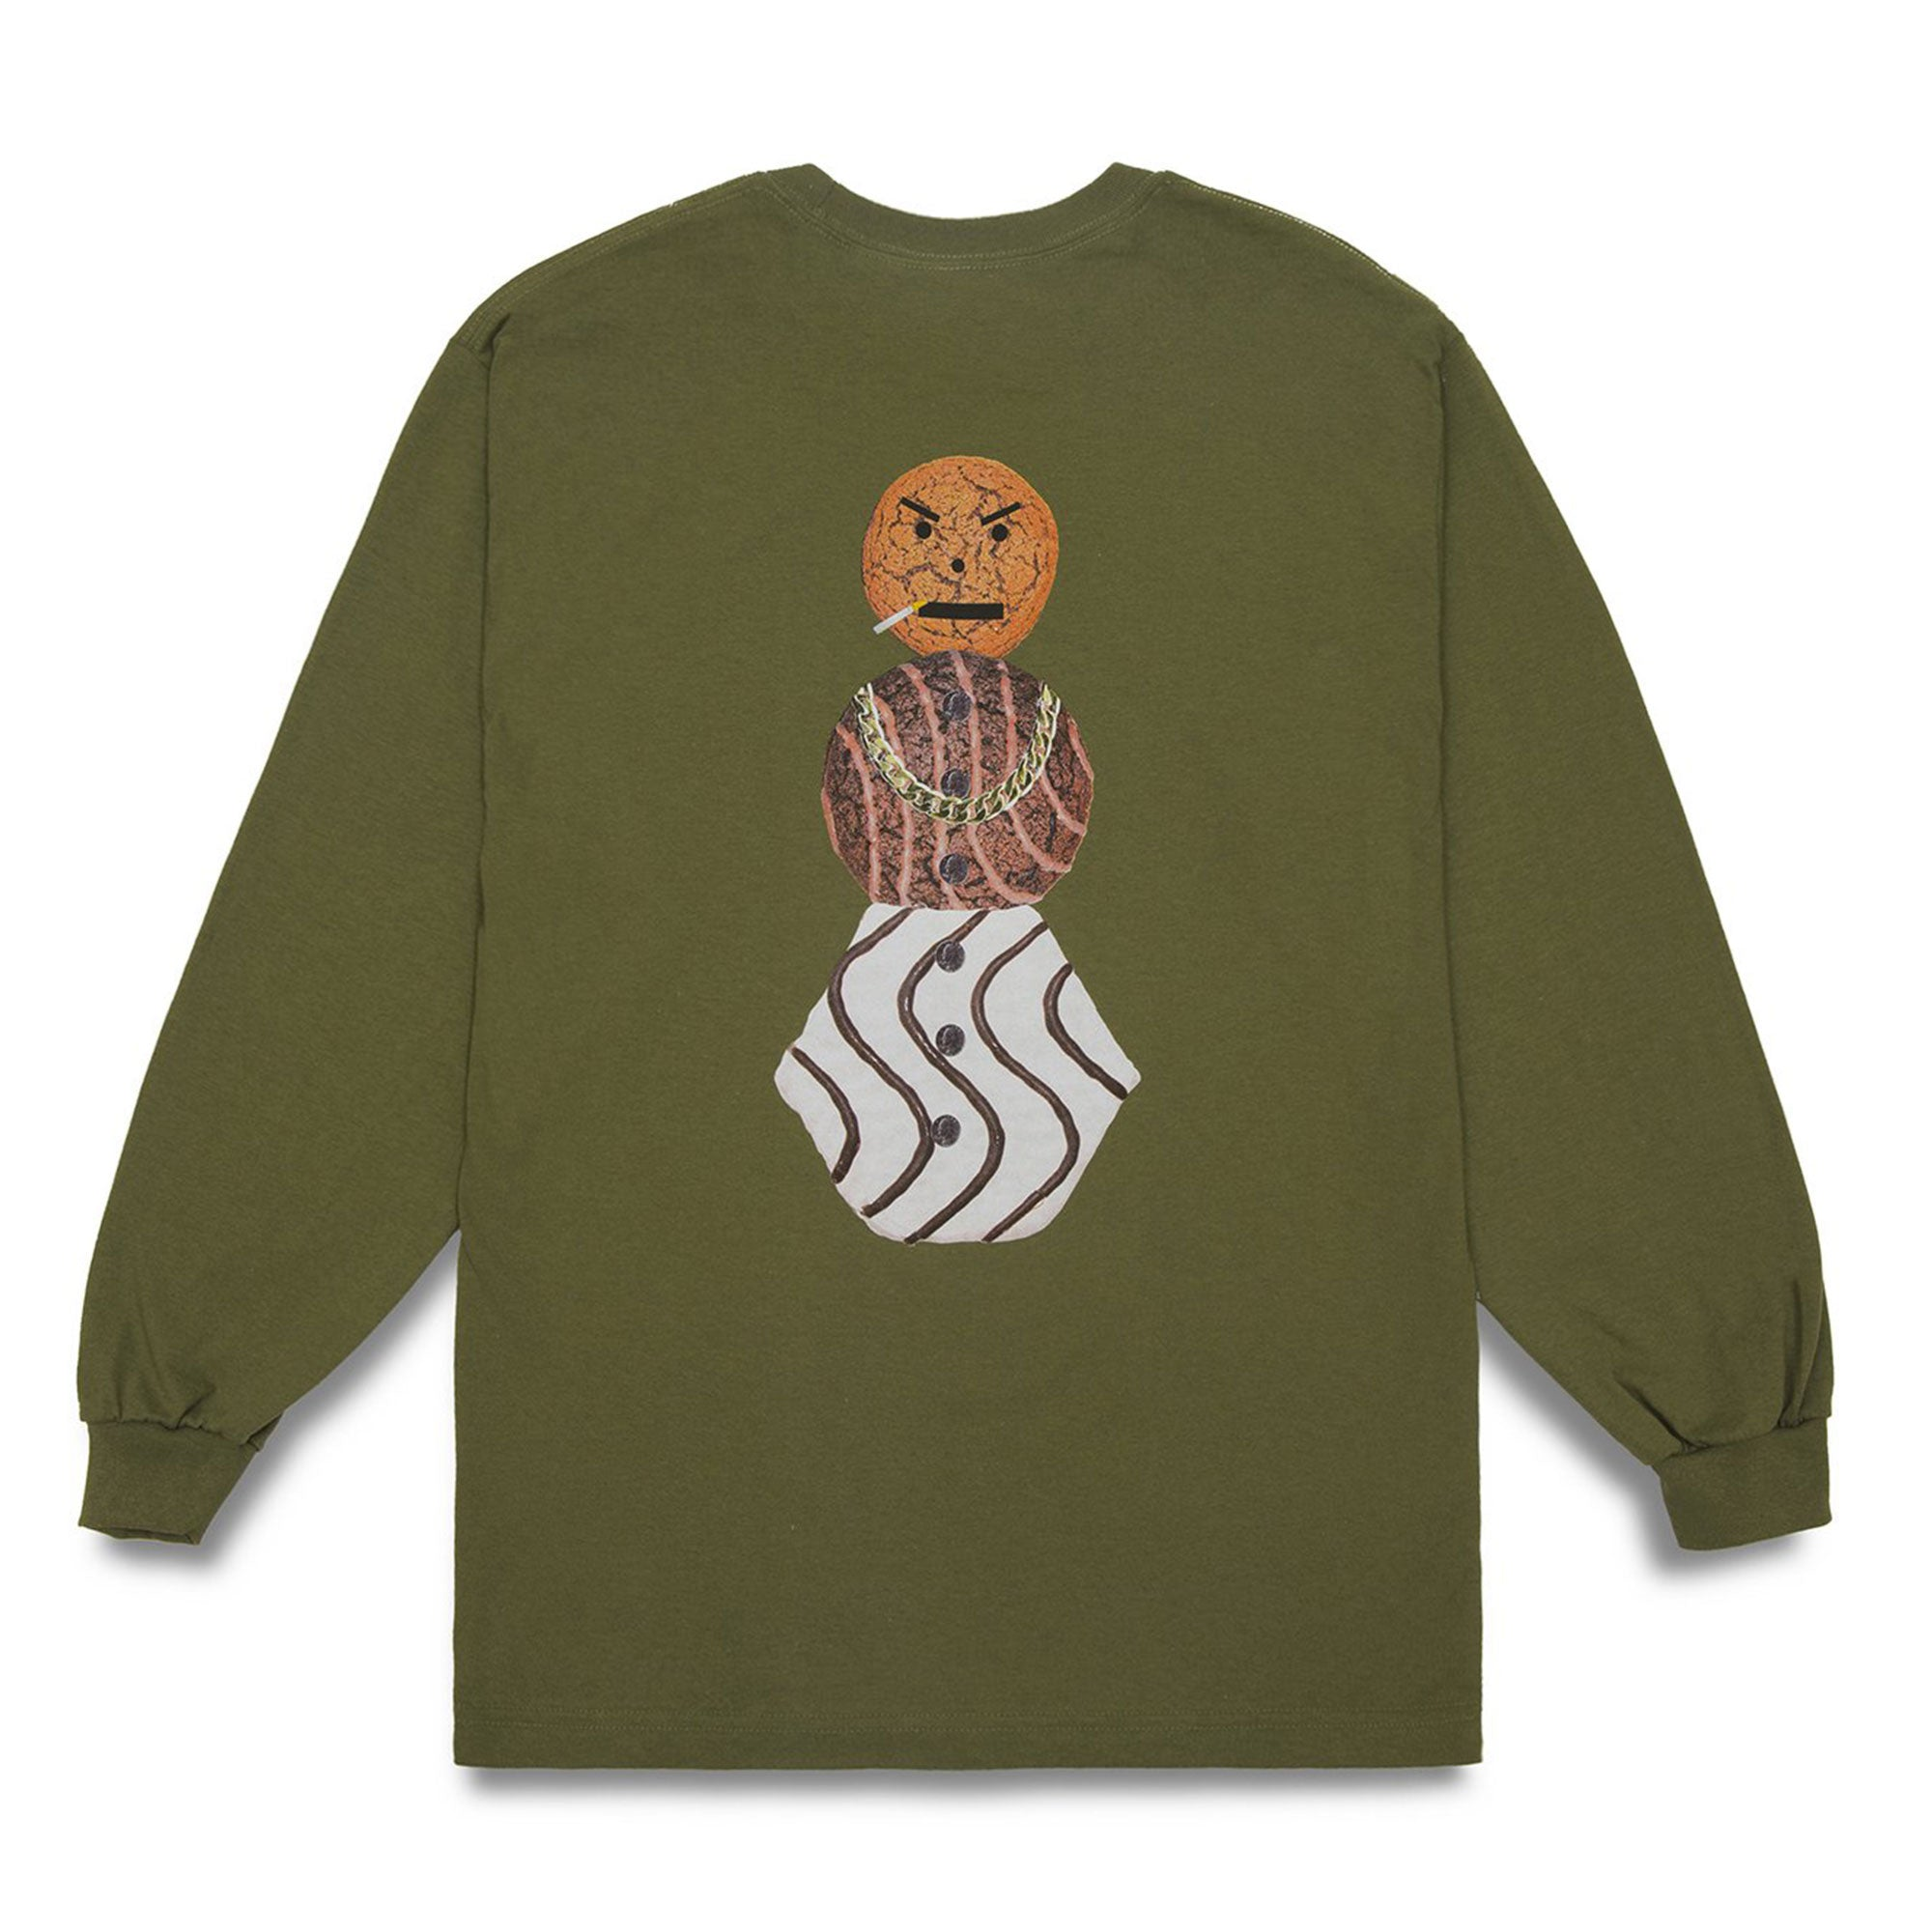 Quartersnacks Classic Snackman Longsleeve Tee Product Photo #1